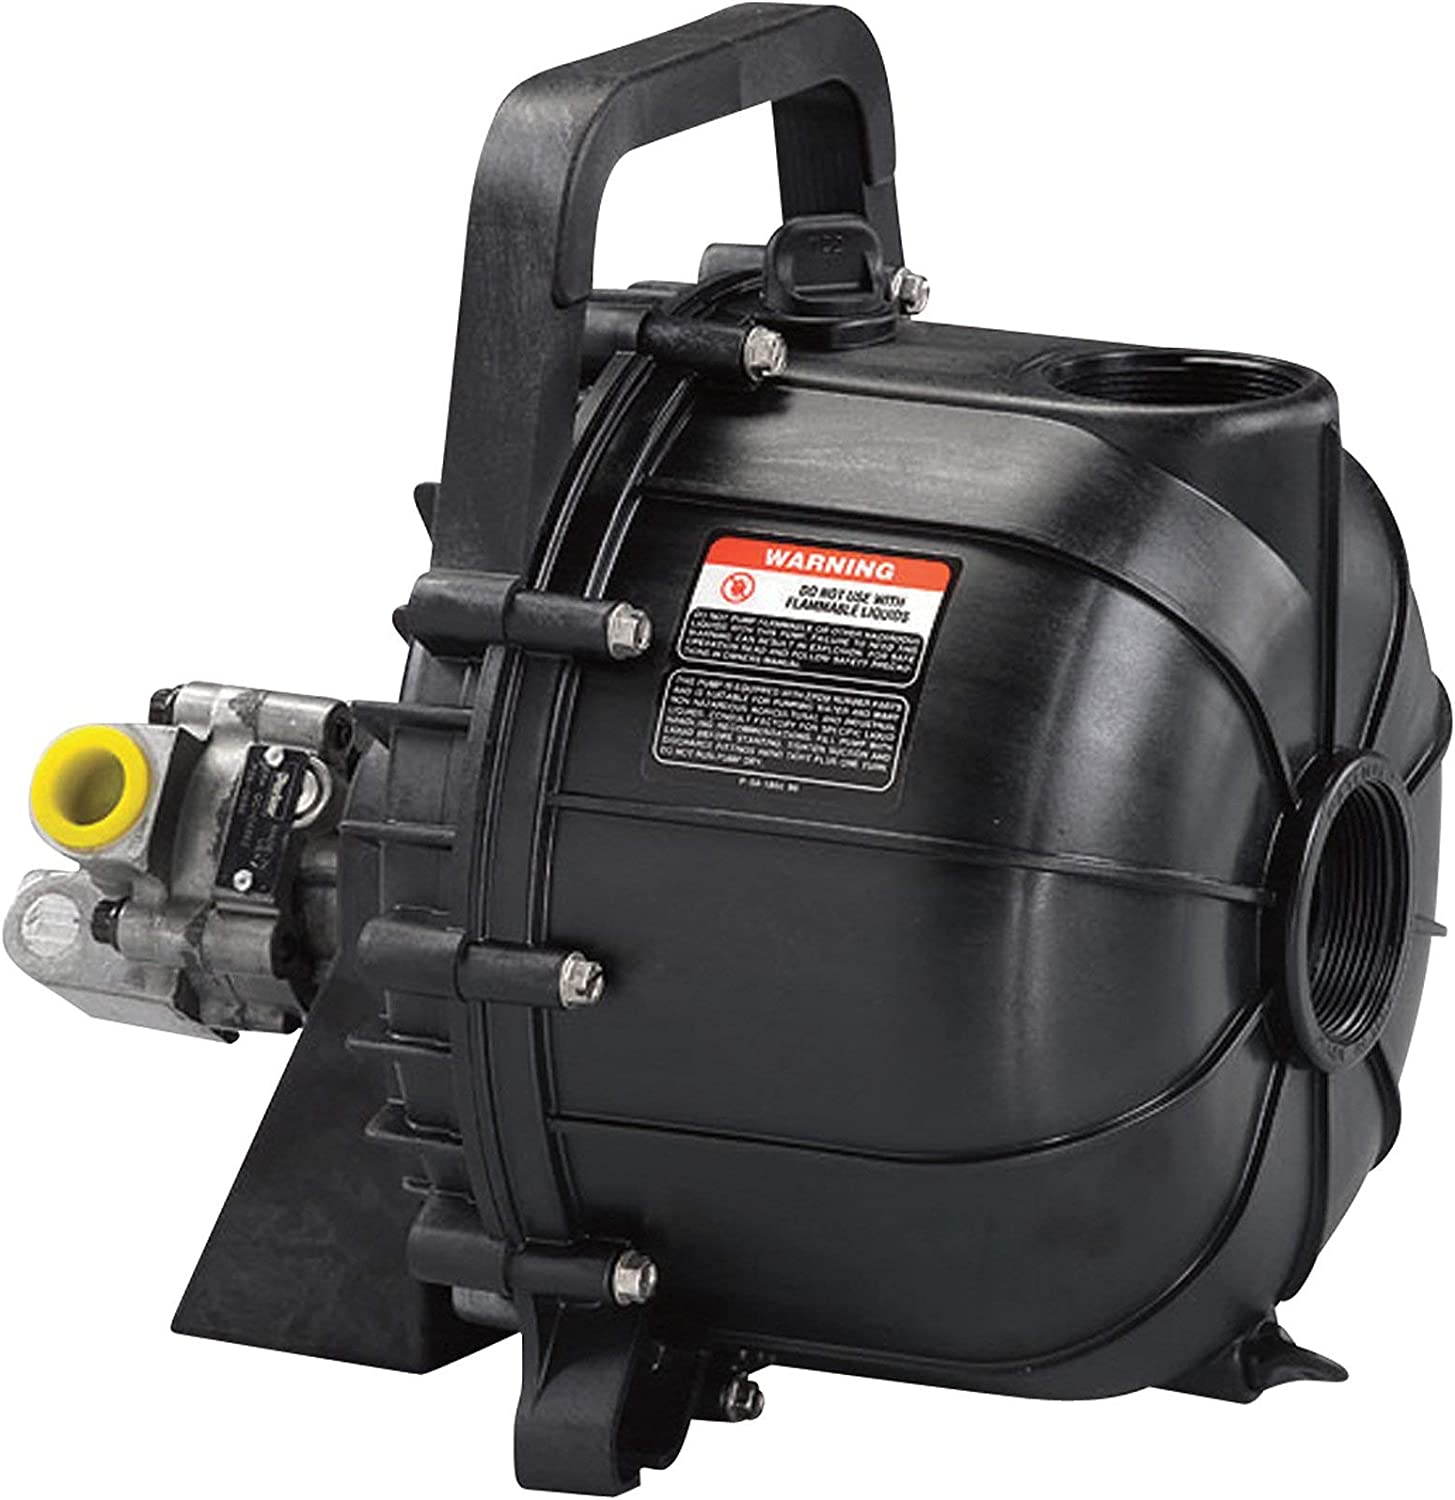 Pacer Self-Priming Centrifugal Water Pump - 14,400 GPH, 5 HP, 2in. Model Number SE2JL HYC